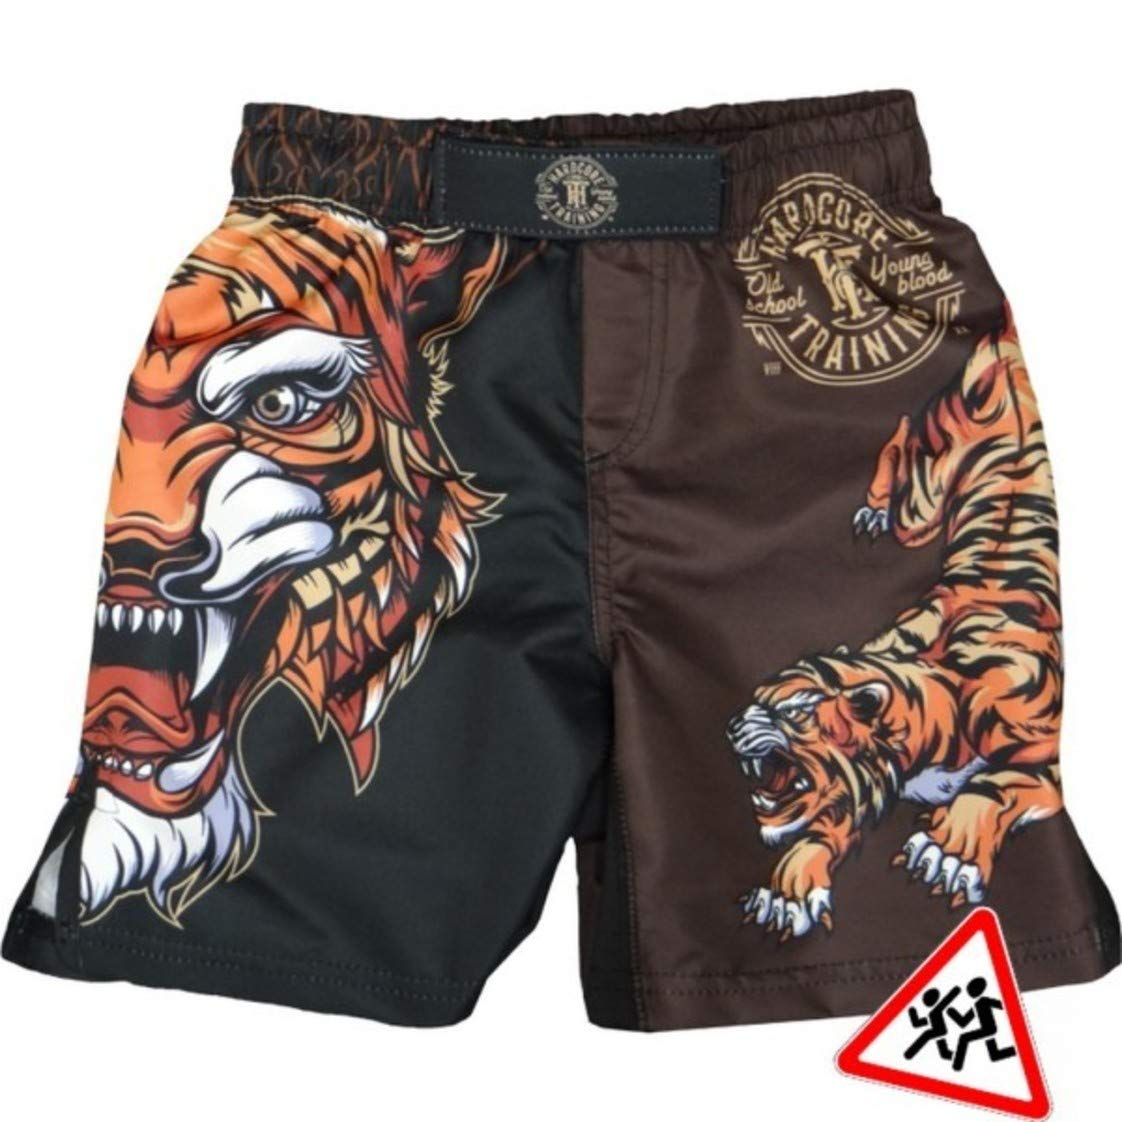 Hardcore Training Kids Sport Shorts Tiger - for Boy - Kids Sport Wear Black by Hardcore Training